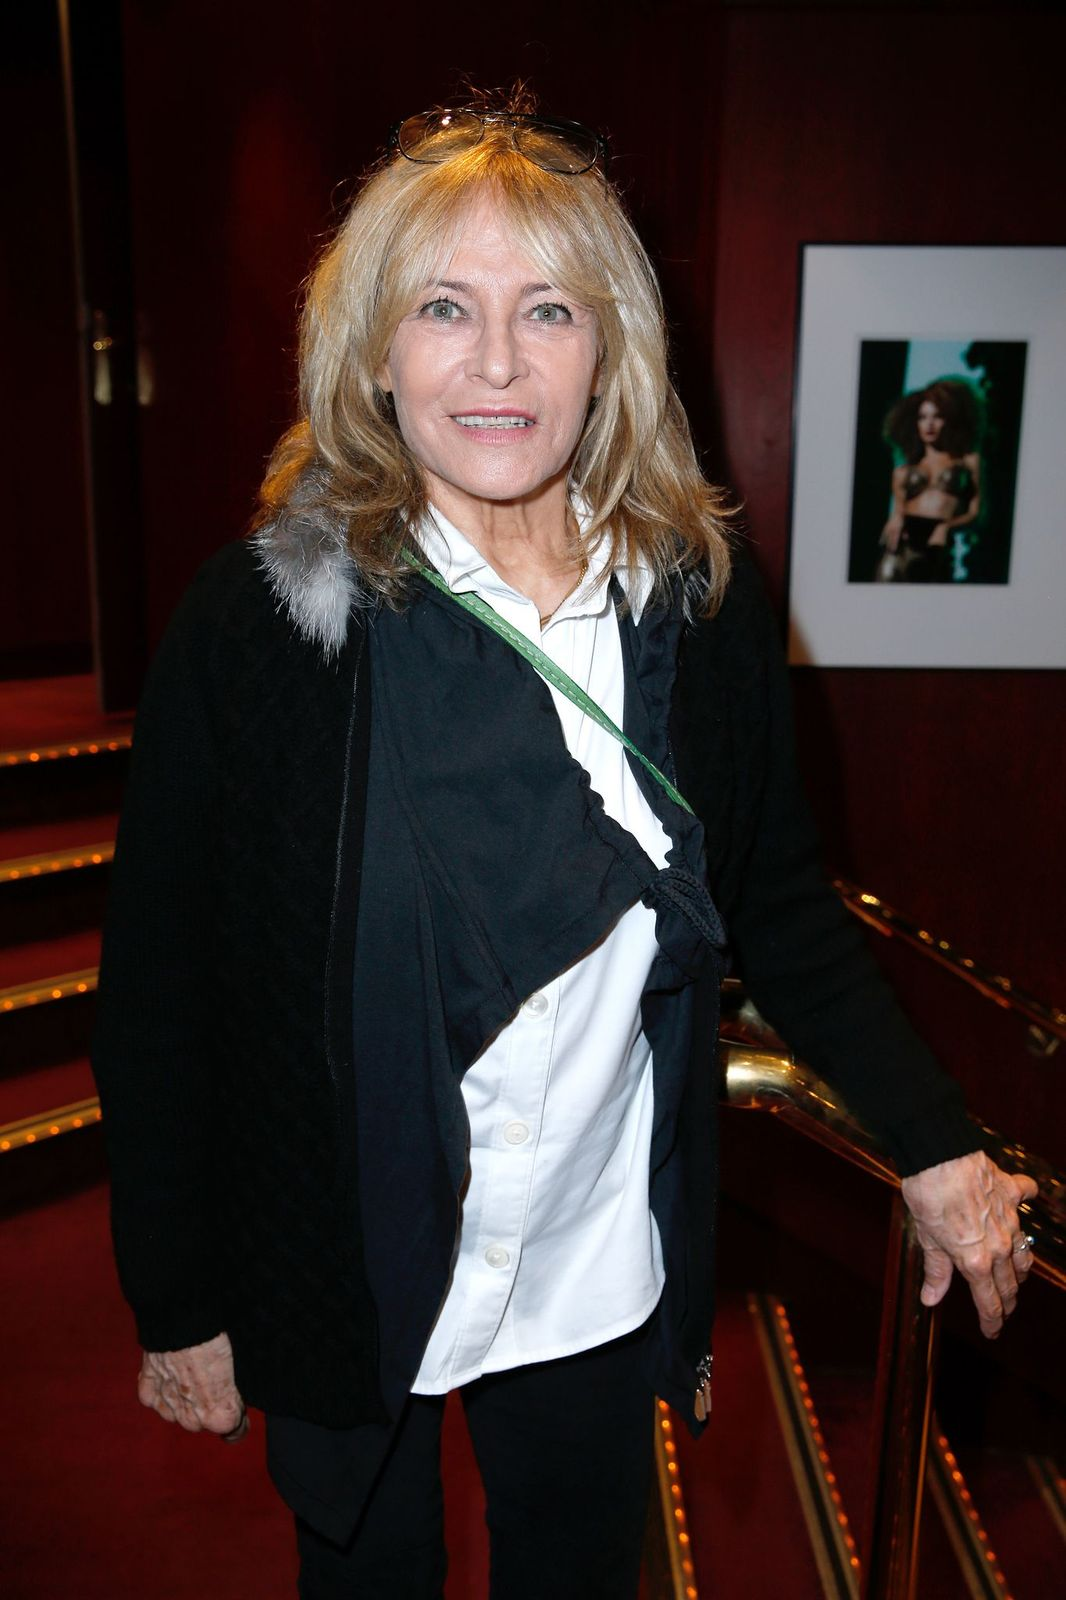 L'actrice Nathalie Delon | Photo : Getty Images